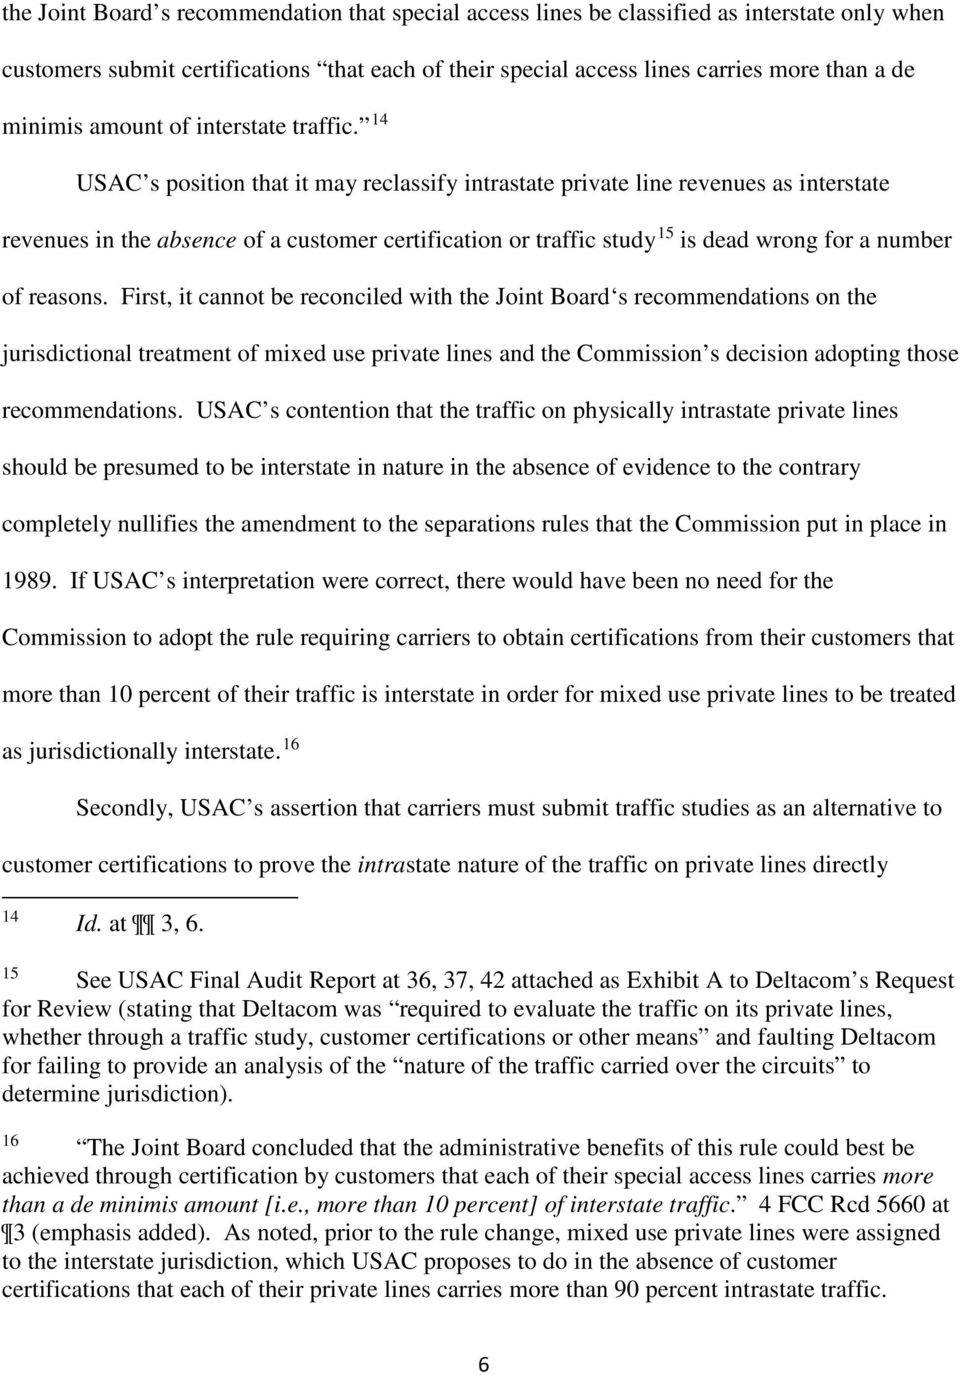 14 USAC s position that it may reclassify intrastate private line revenues as interstate revenues in the absence of a customer certification or traffic study 15 is dead wrong for a number of reasons.